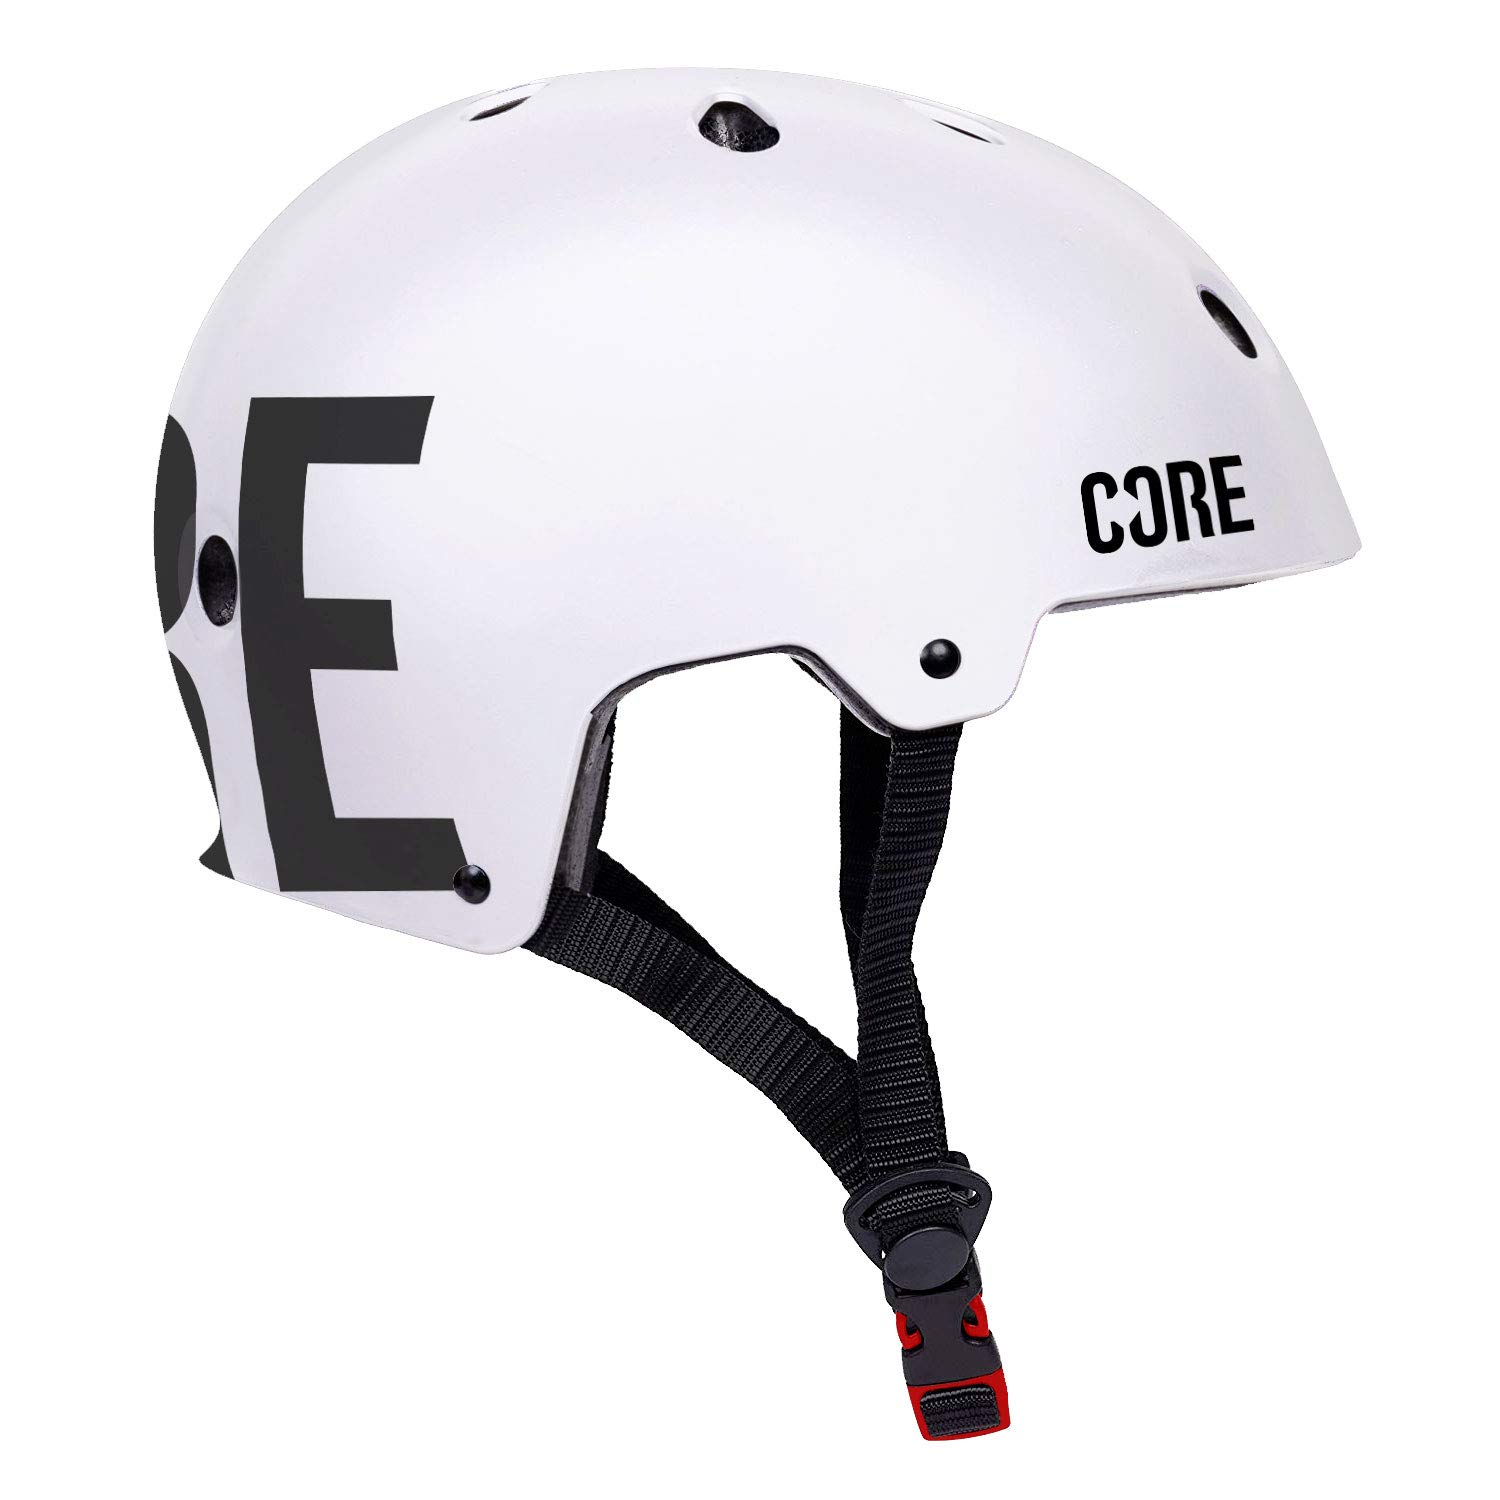 CORE Protection Street Skate/BMX/Bike/Scooter Helmet